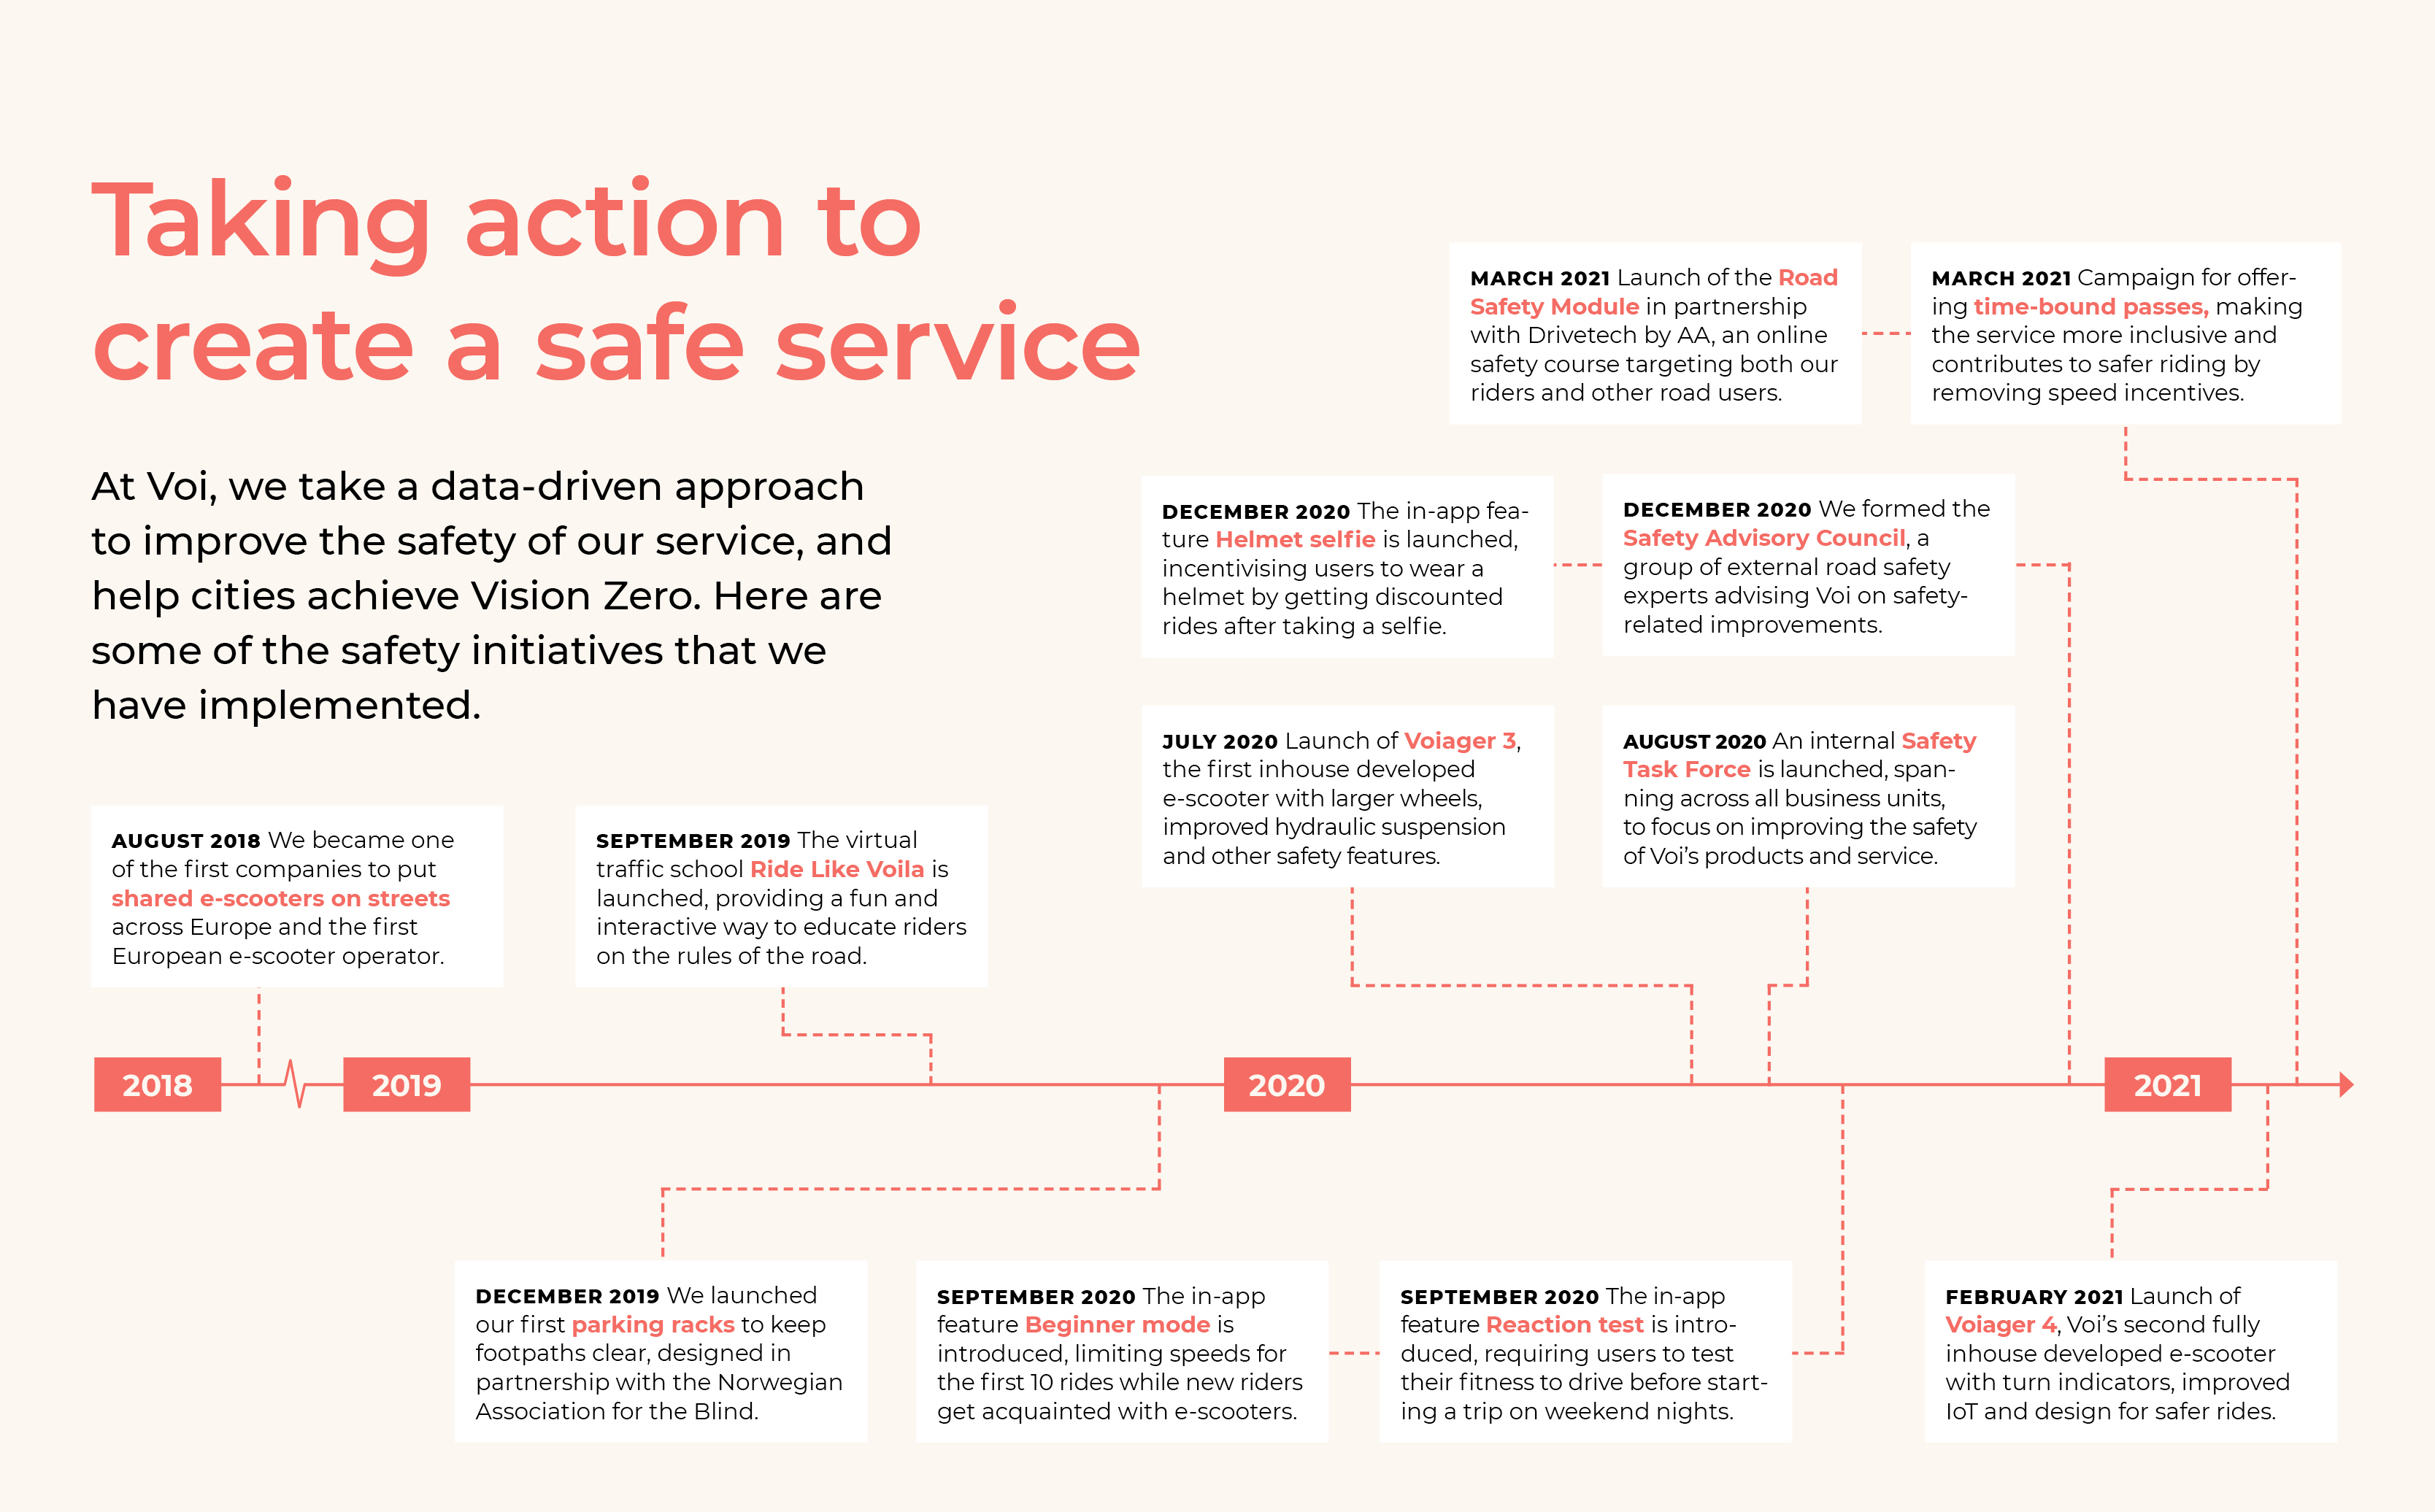 A timeline showing safety initiatives that Voi has taken.